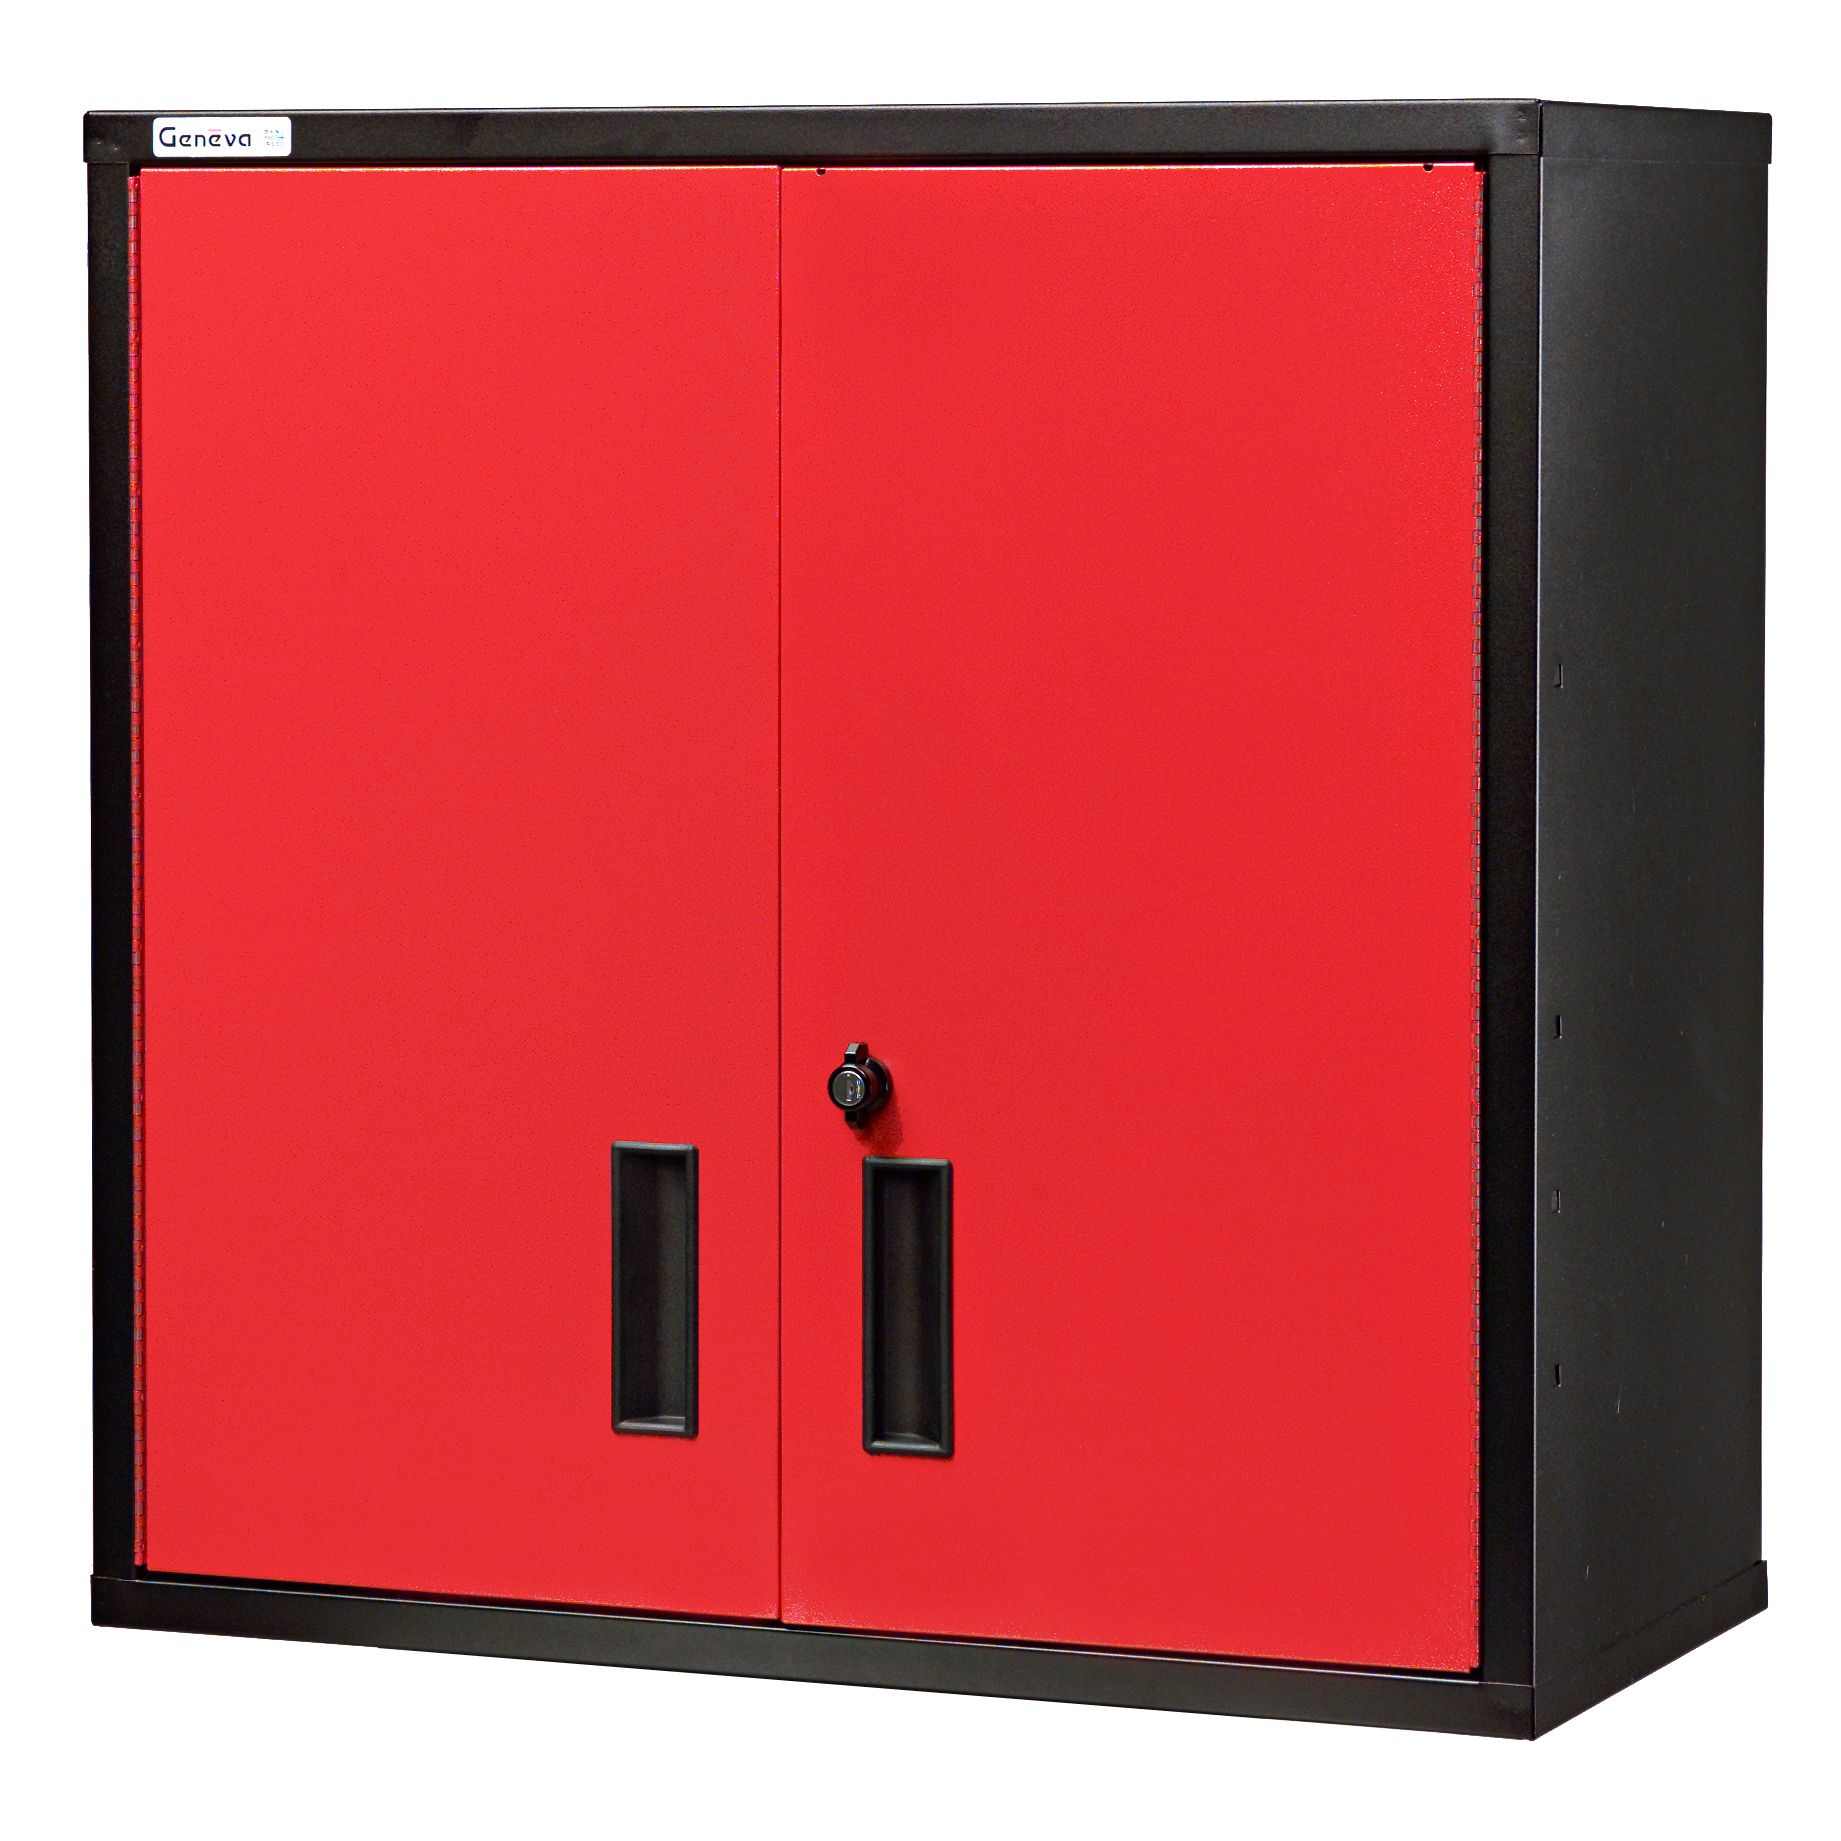 Craftsman Garage Wall Organizer Geneva 30 Quot X 30 Quot Wall Storage Cabinet Red While